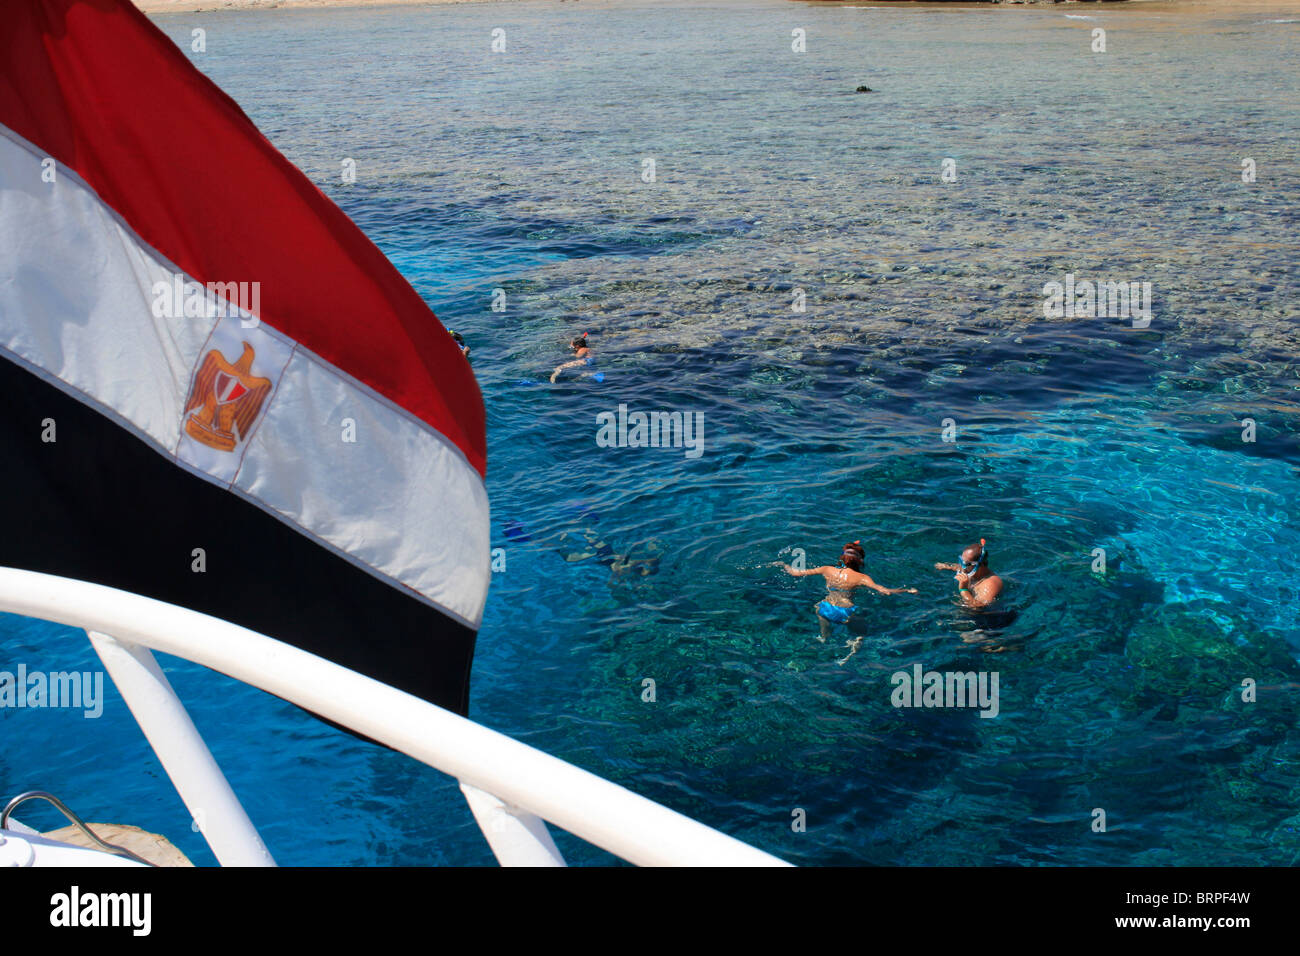 Day trippers snorkeling in Ras Mohammed National Marine Park near Sharm El Sheikh, Egypt - Stock Image